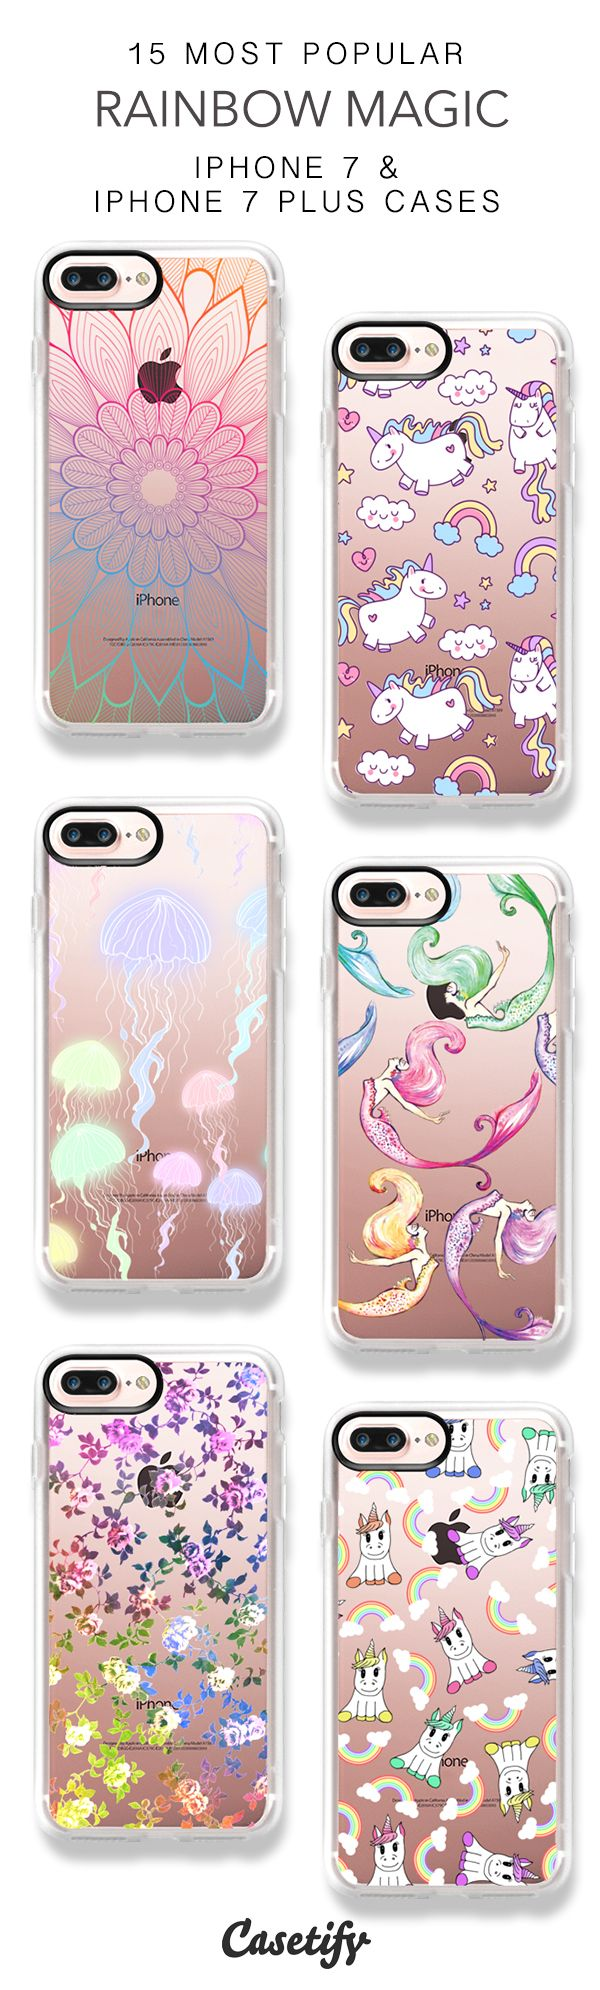 15 Most Popular Rainbow Magic iPhone 7 Cases and iPhone 7 Plus Cases. More Rainbow iPhone case here > https://www.casetify.com/collections/top_100_designs#/?vc=3KNutt6OJc http://amzn.to/2rwqPgY